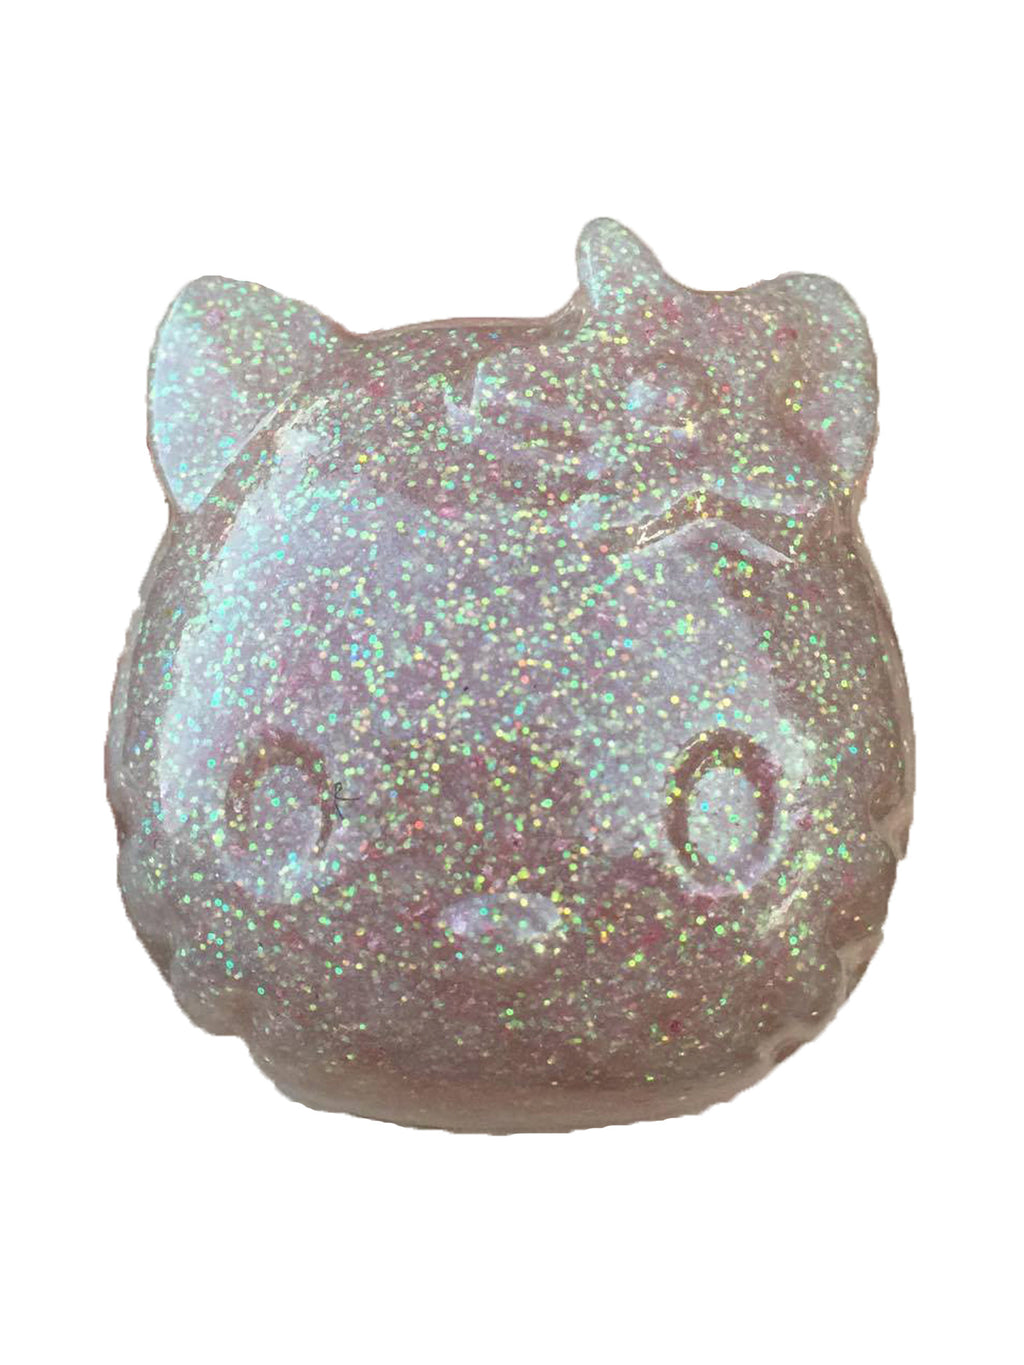 Hello Kitty Paperweight in Baby Pink and White Glitter